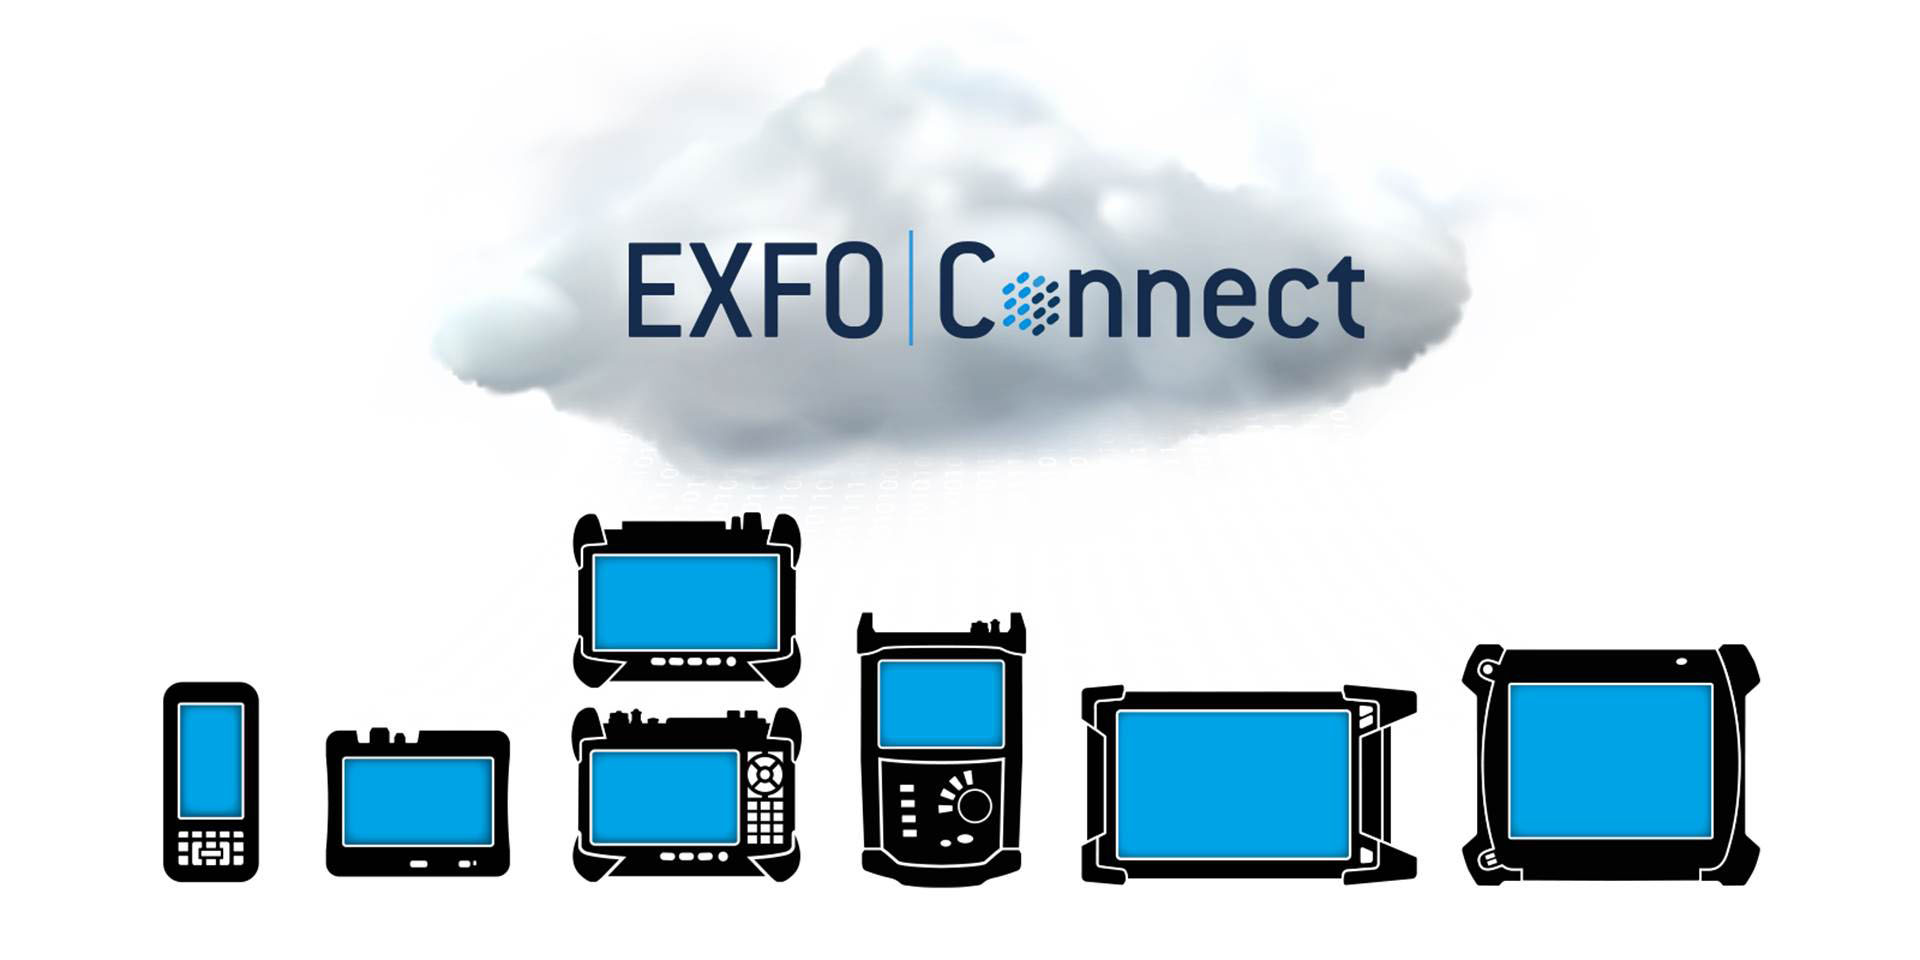 EXFO EXFO Connect - cloud-based test management